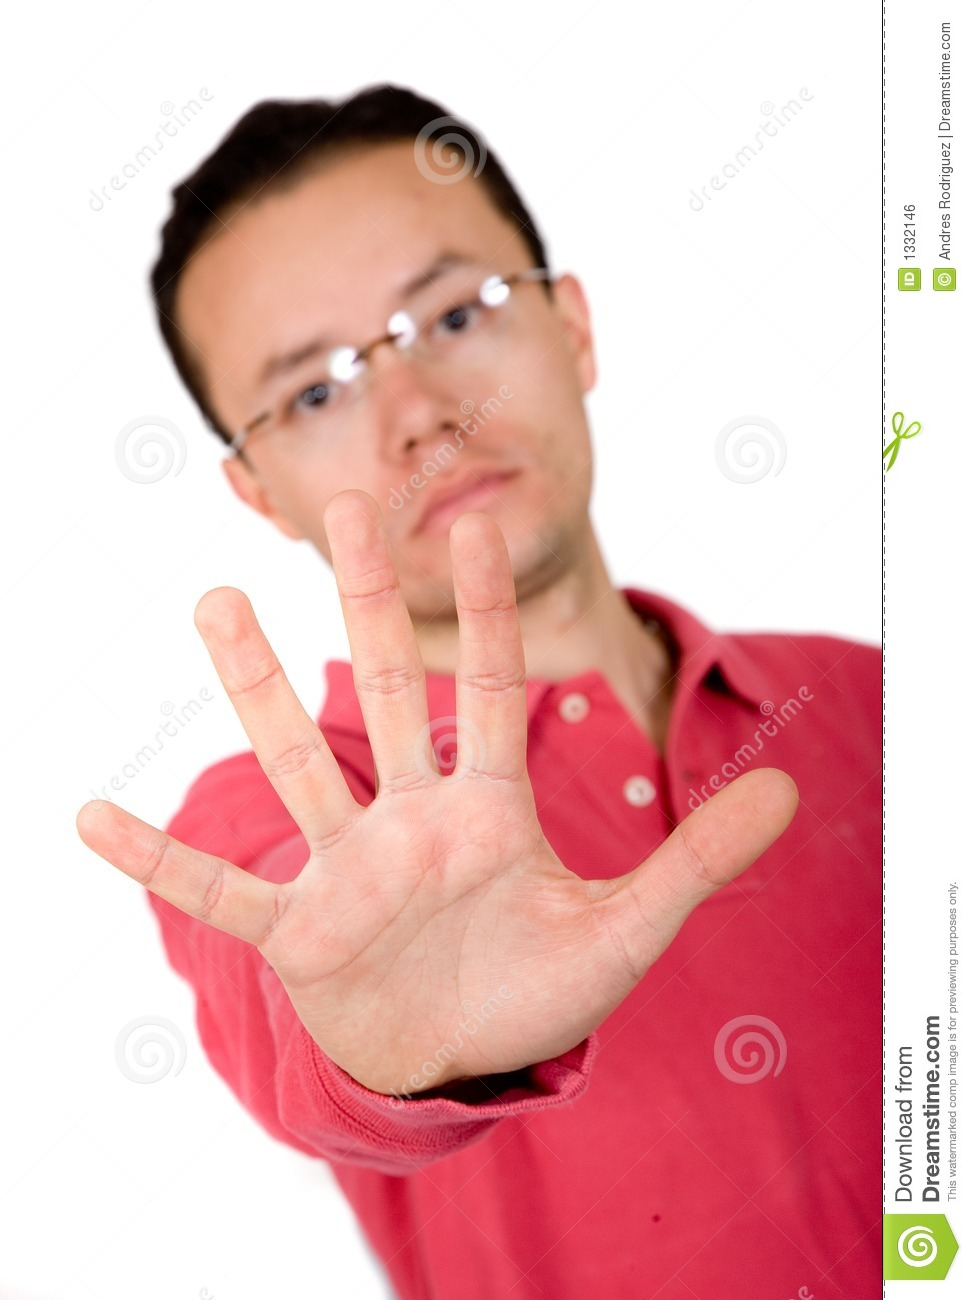 Casual guy hand - stop stock photo. Image of person ...